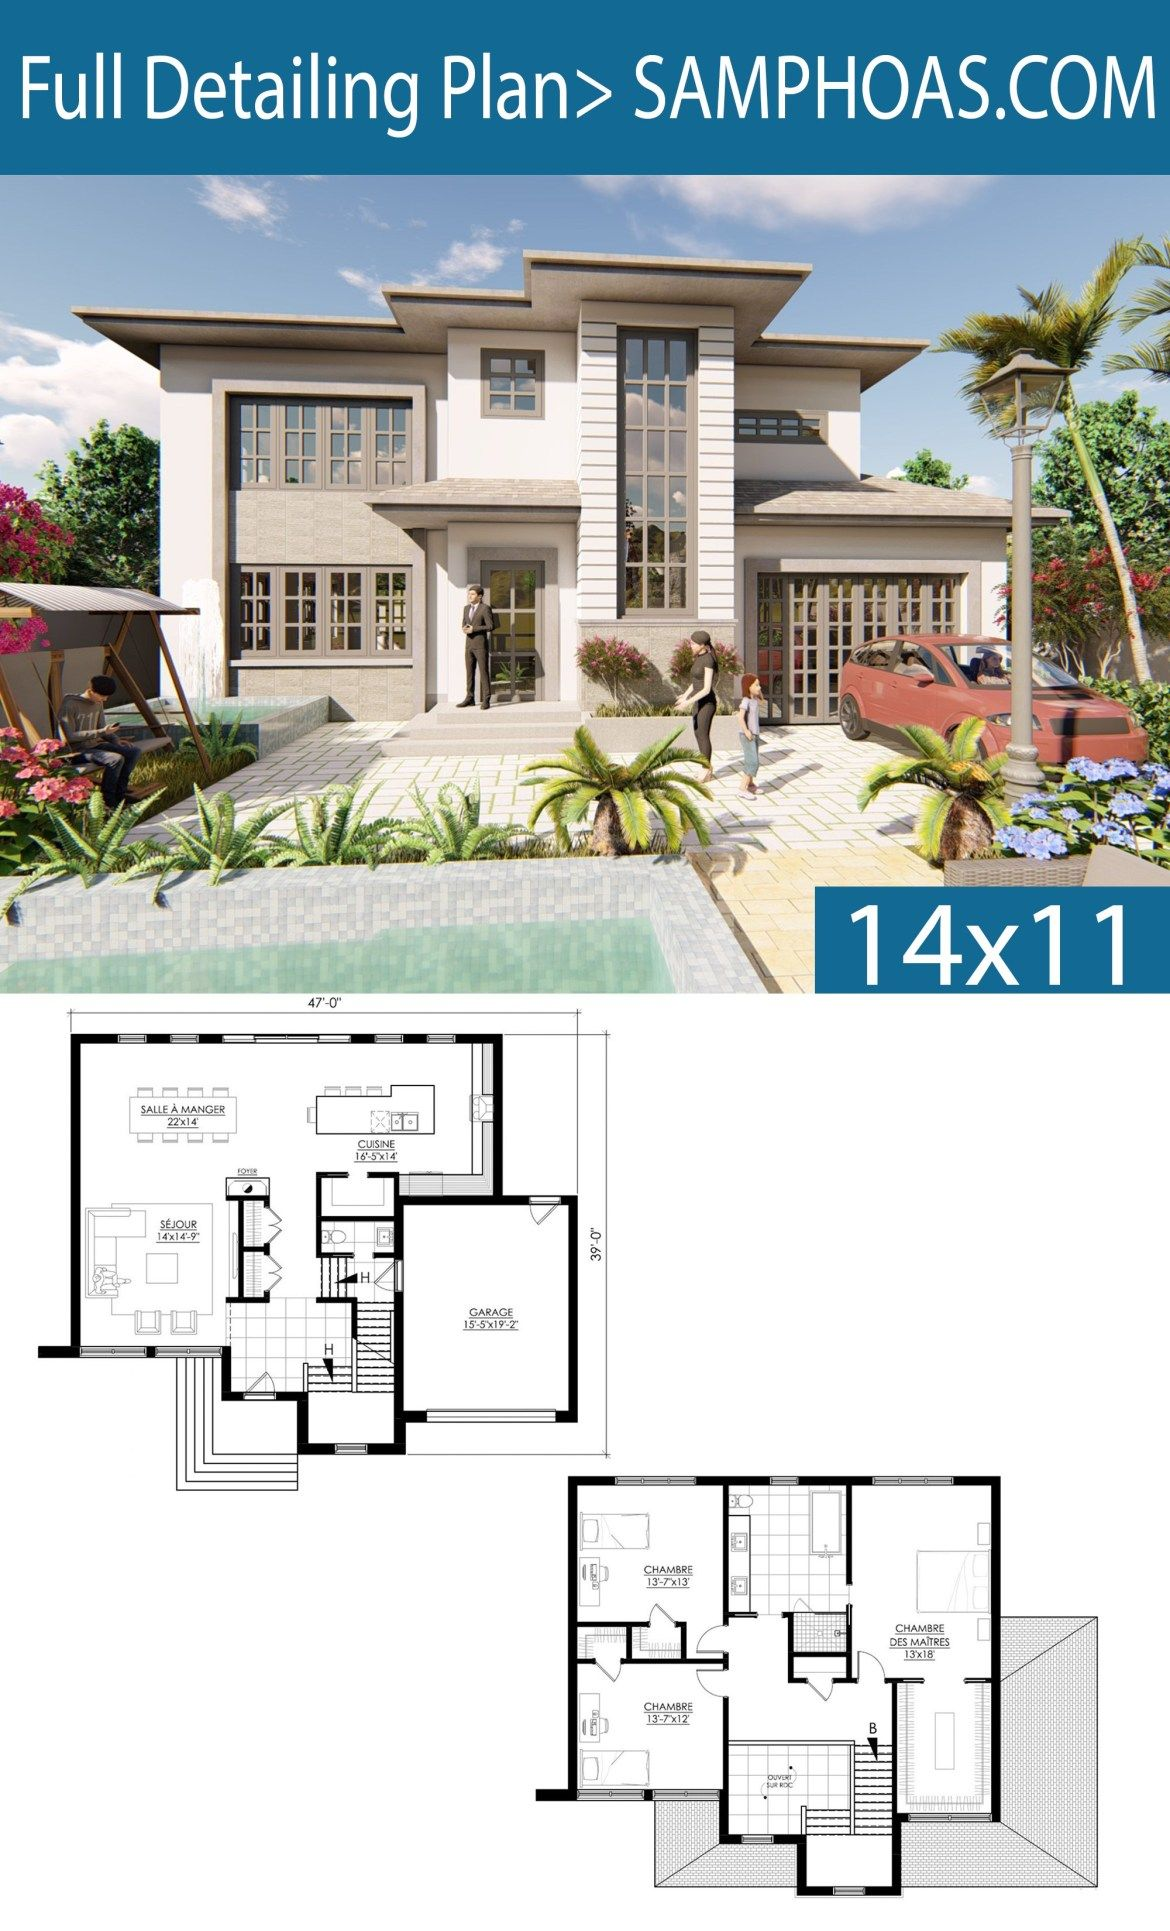 Home Design Plan 17x14m With 4 Bedrooms Beautiful House Plans Architectural House Plans House Projects Architecture